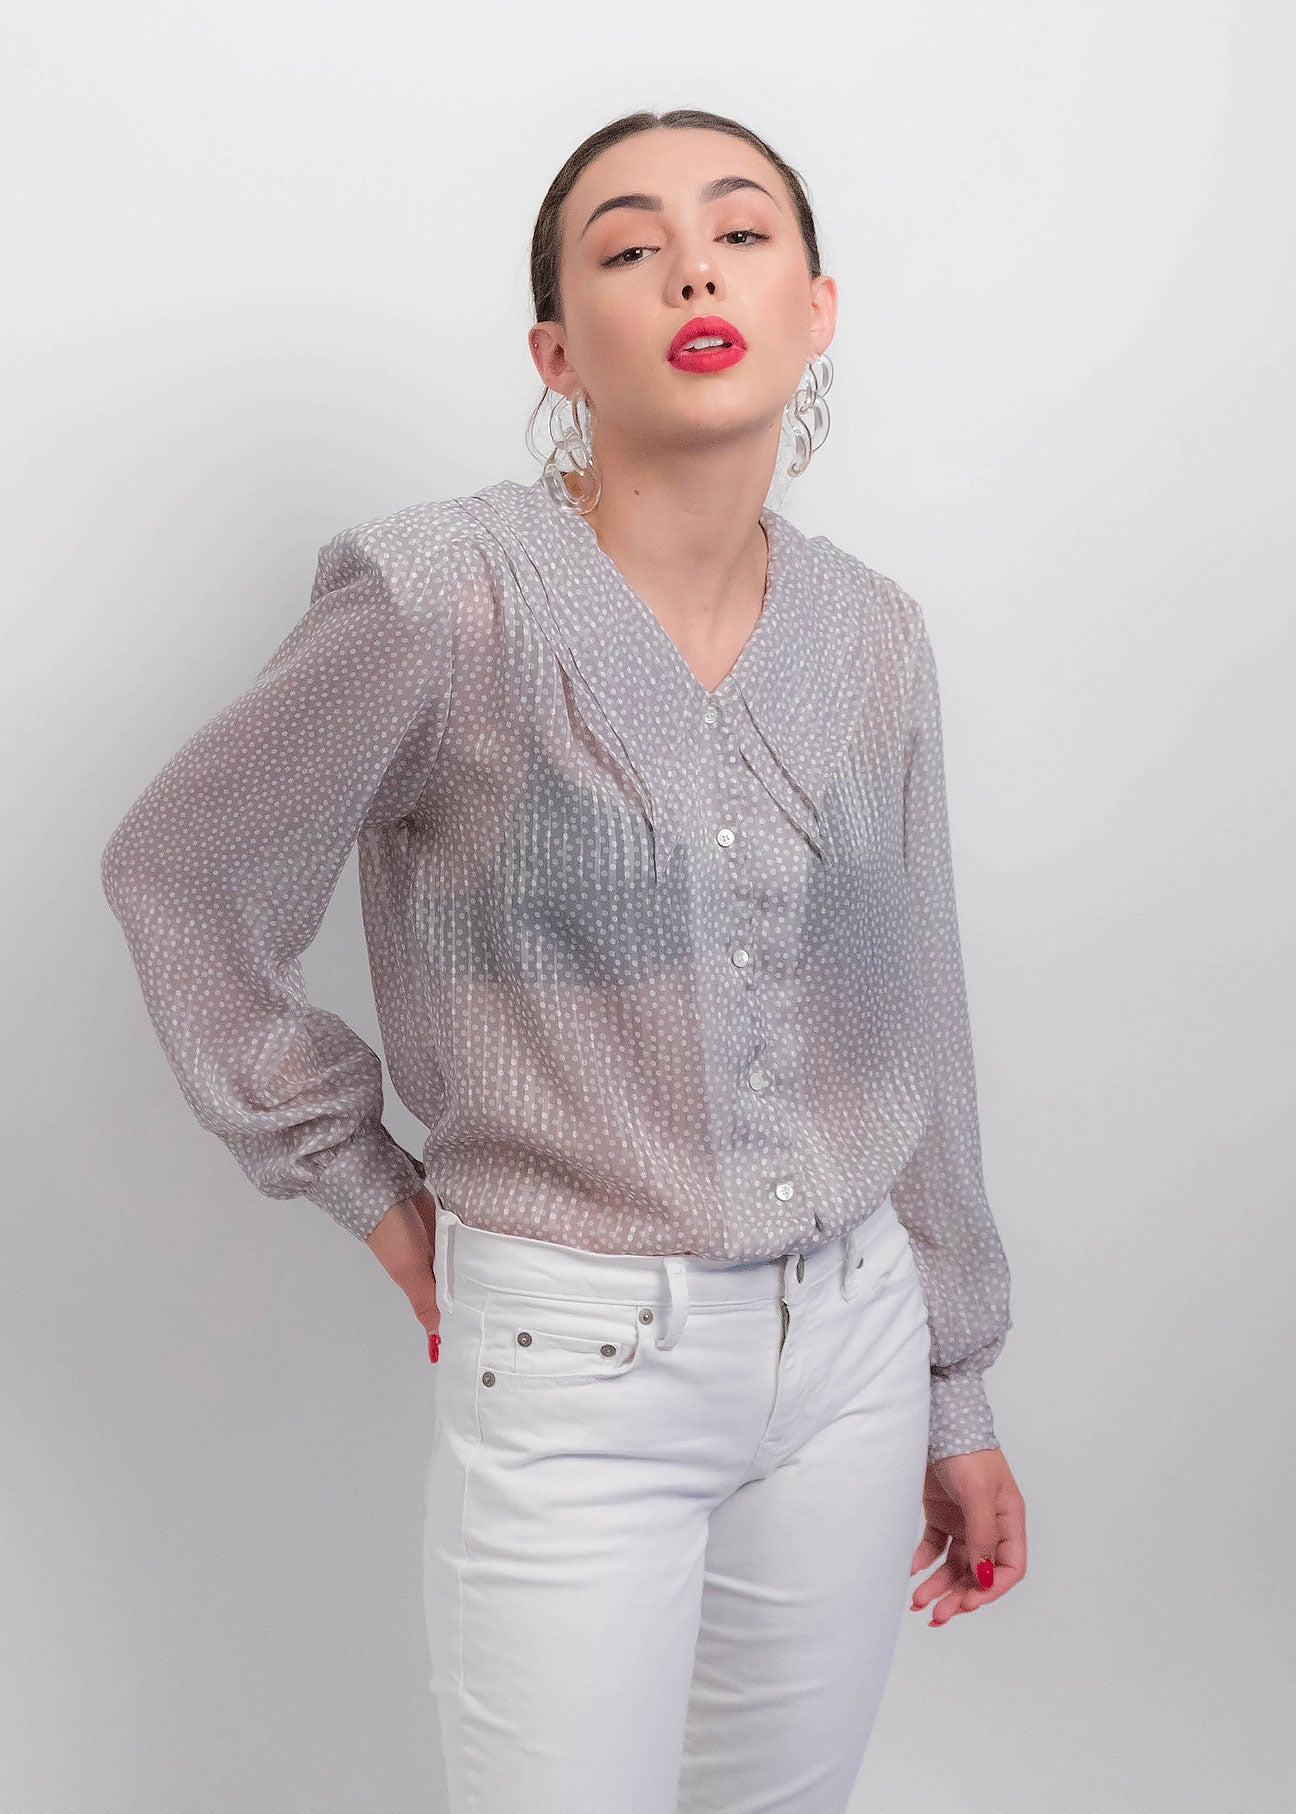 80s Sheer Polka-Dot Blouse